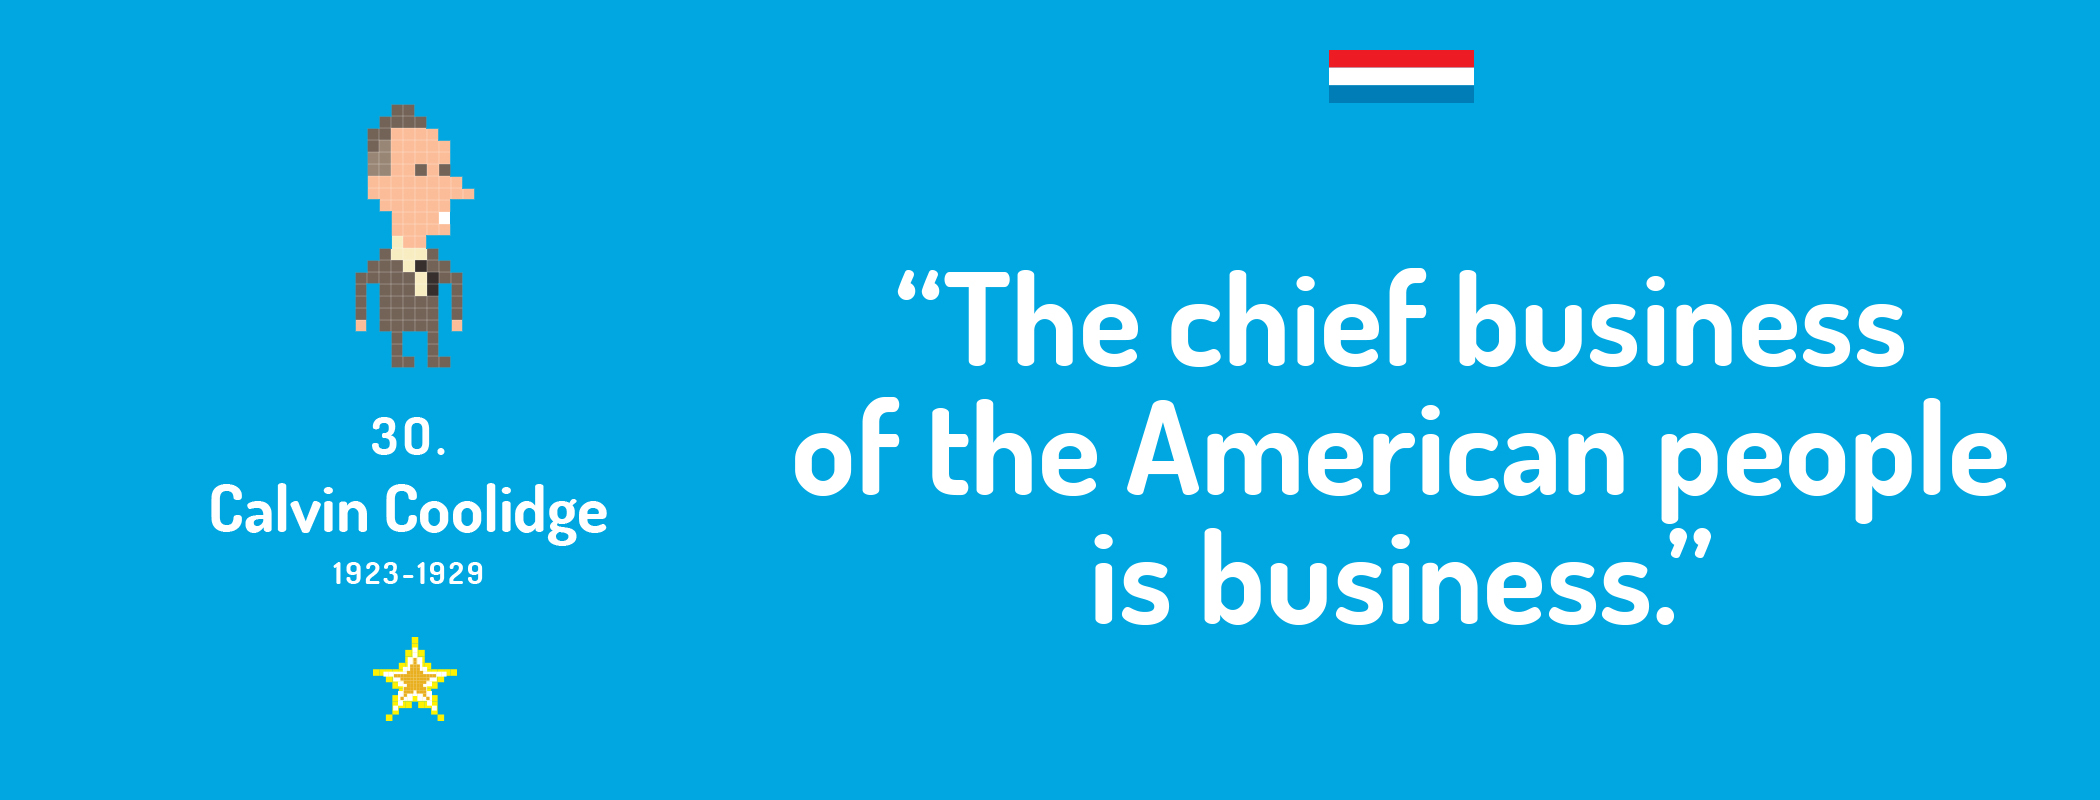 The chief business of the American people is business.